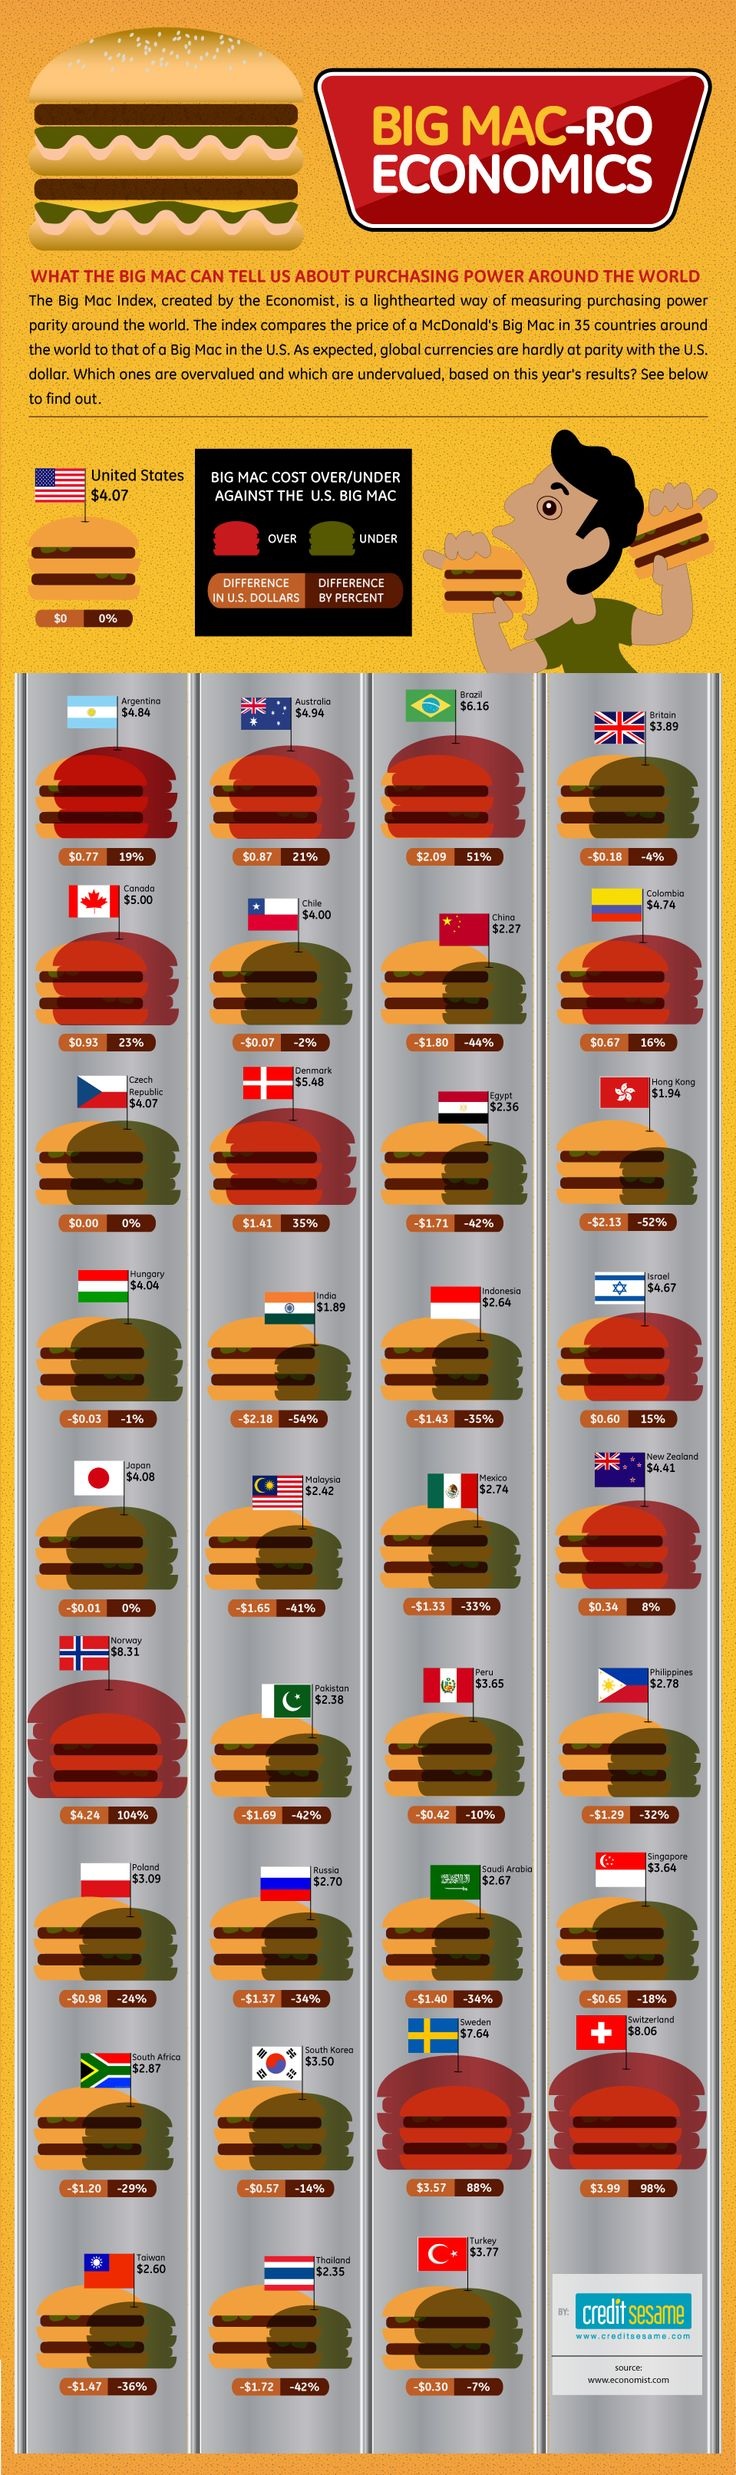 Big Mac-ronomics: What The Price of a Big Mac Reveals About Purchasing Power Around the World